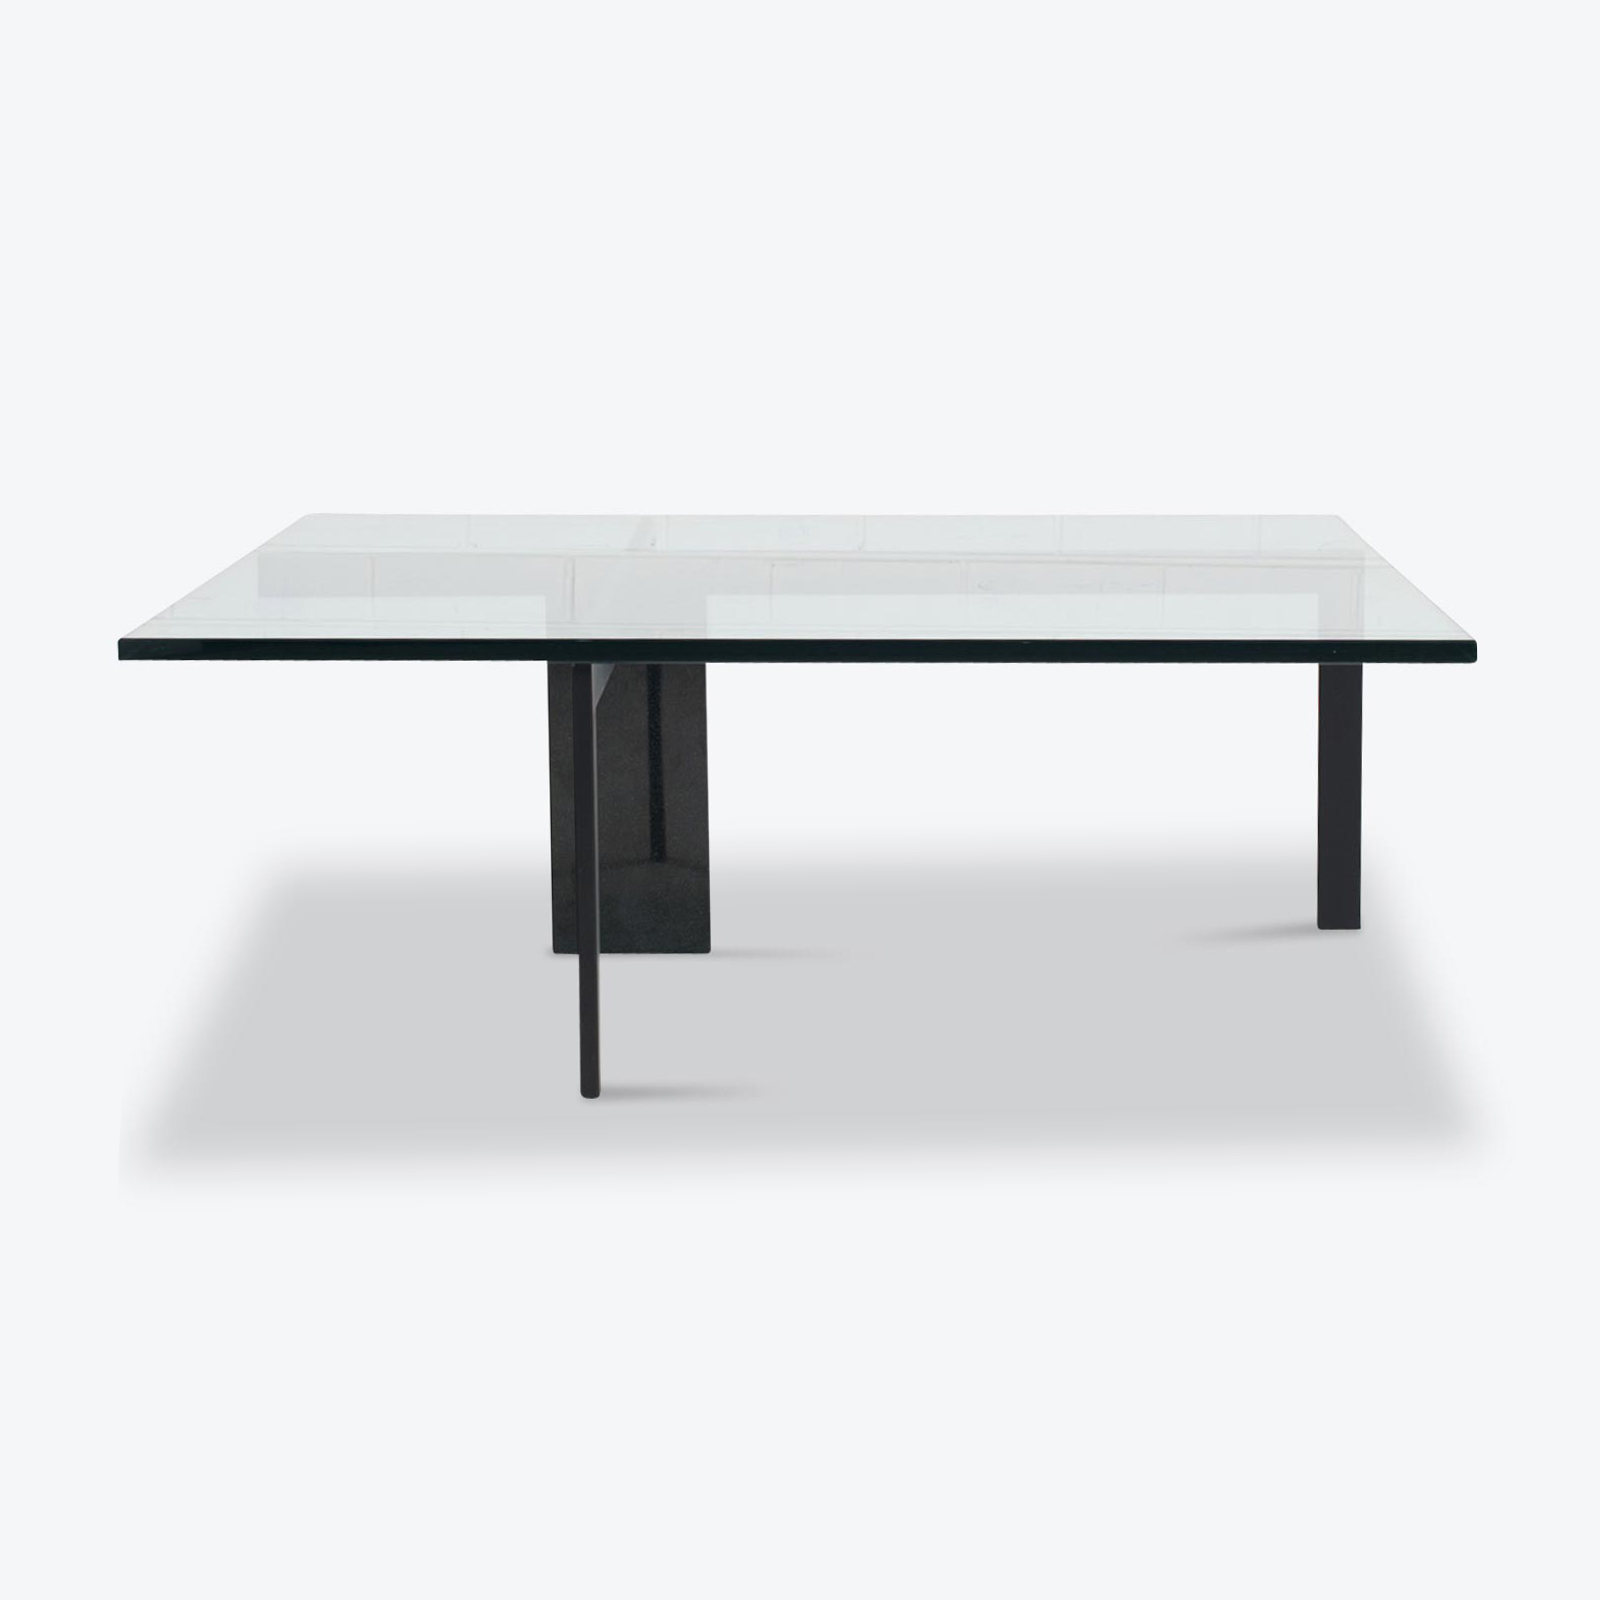 Kw 1 Coffee Table By Hank Kwint For Metaform In Glass With Black